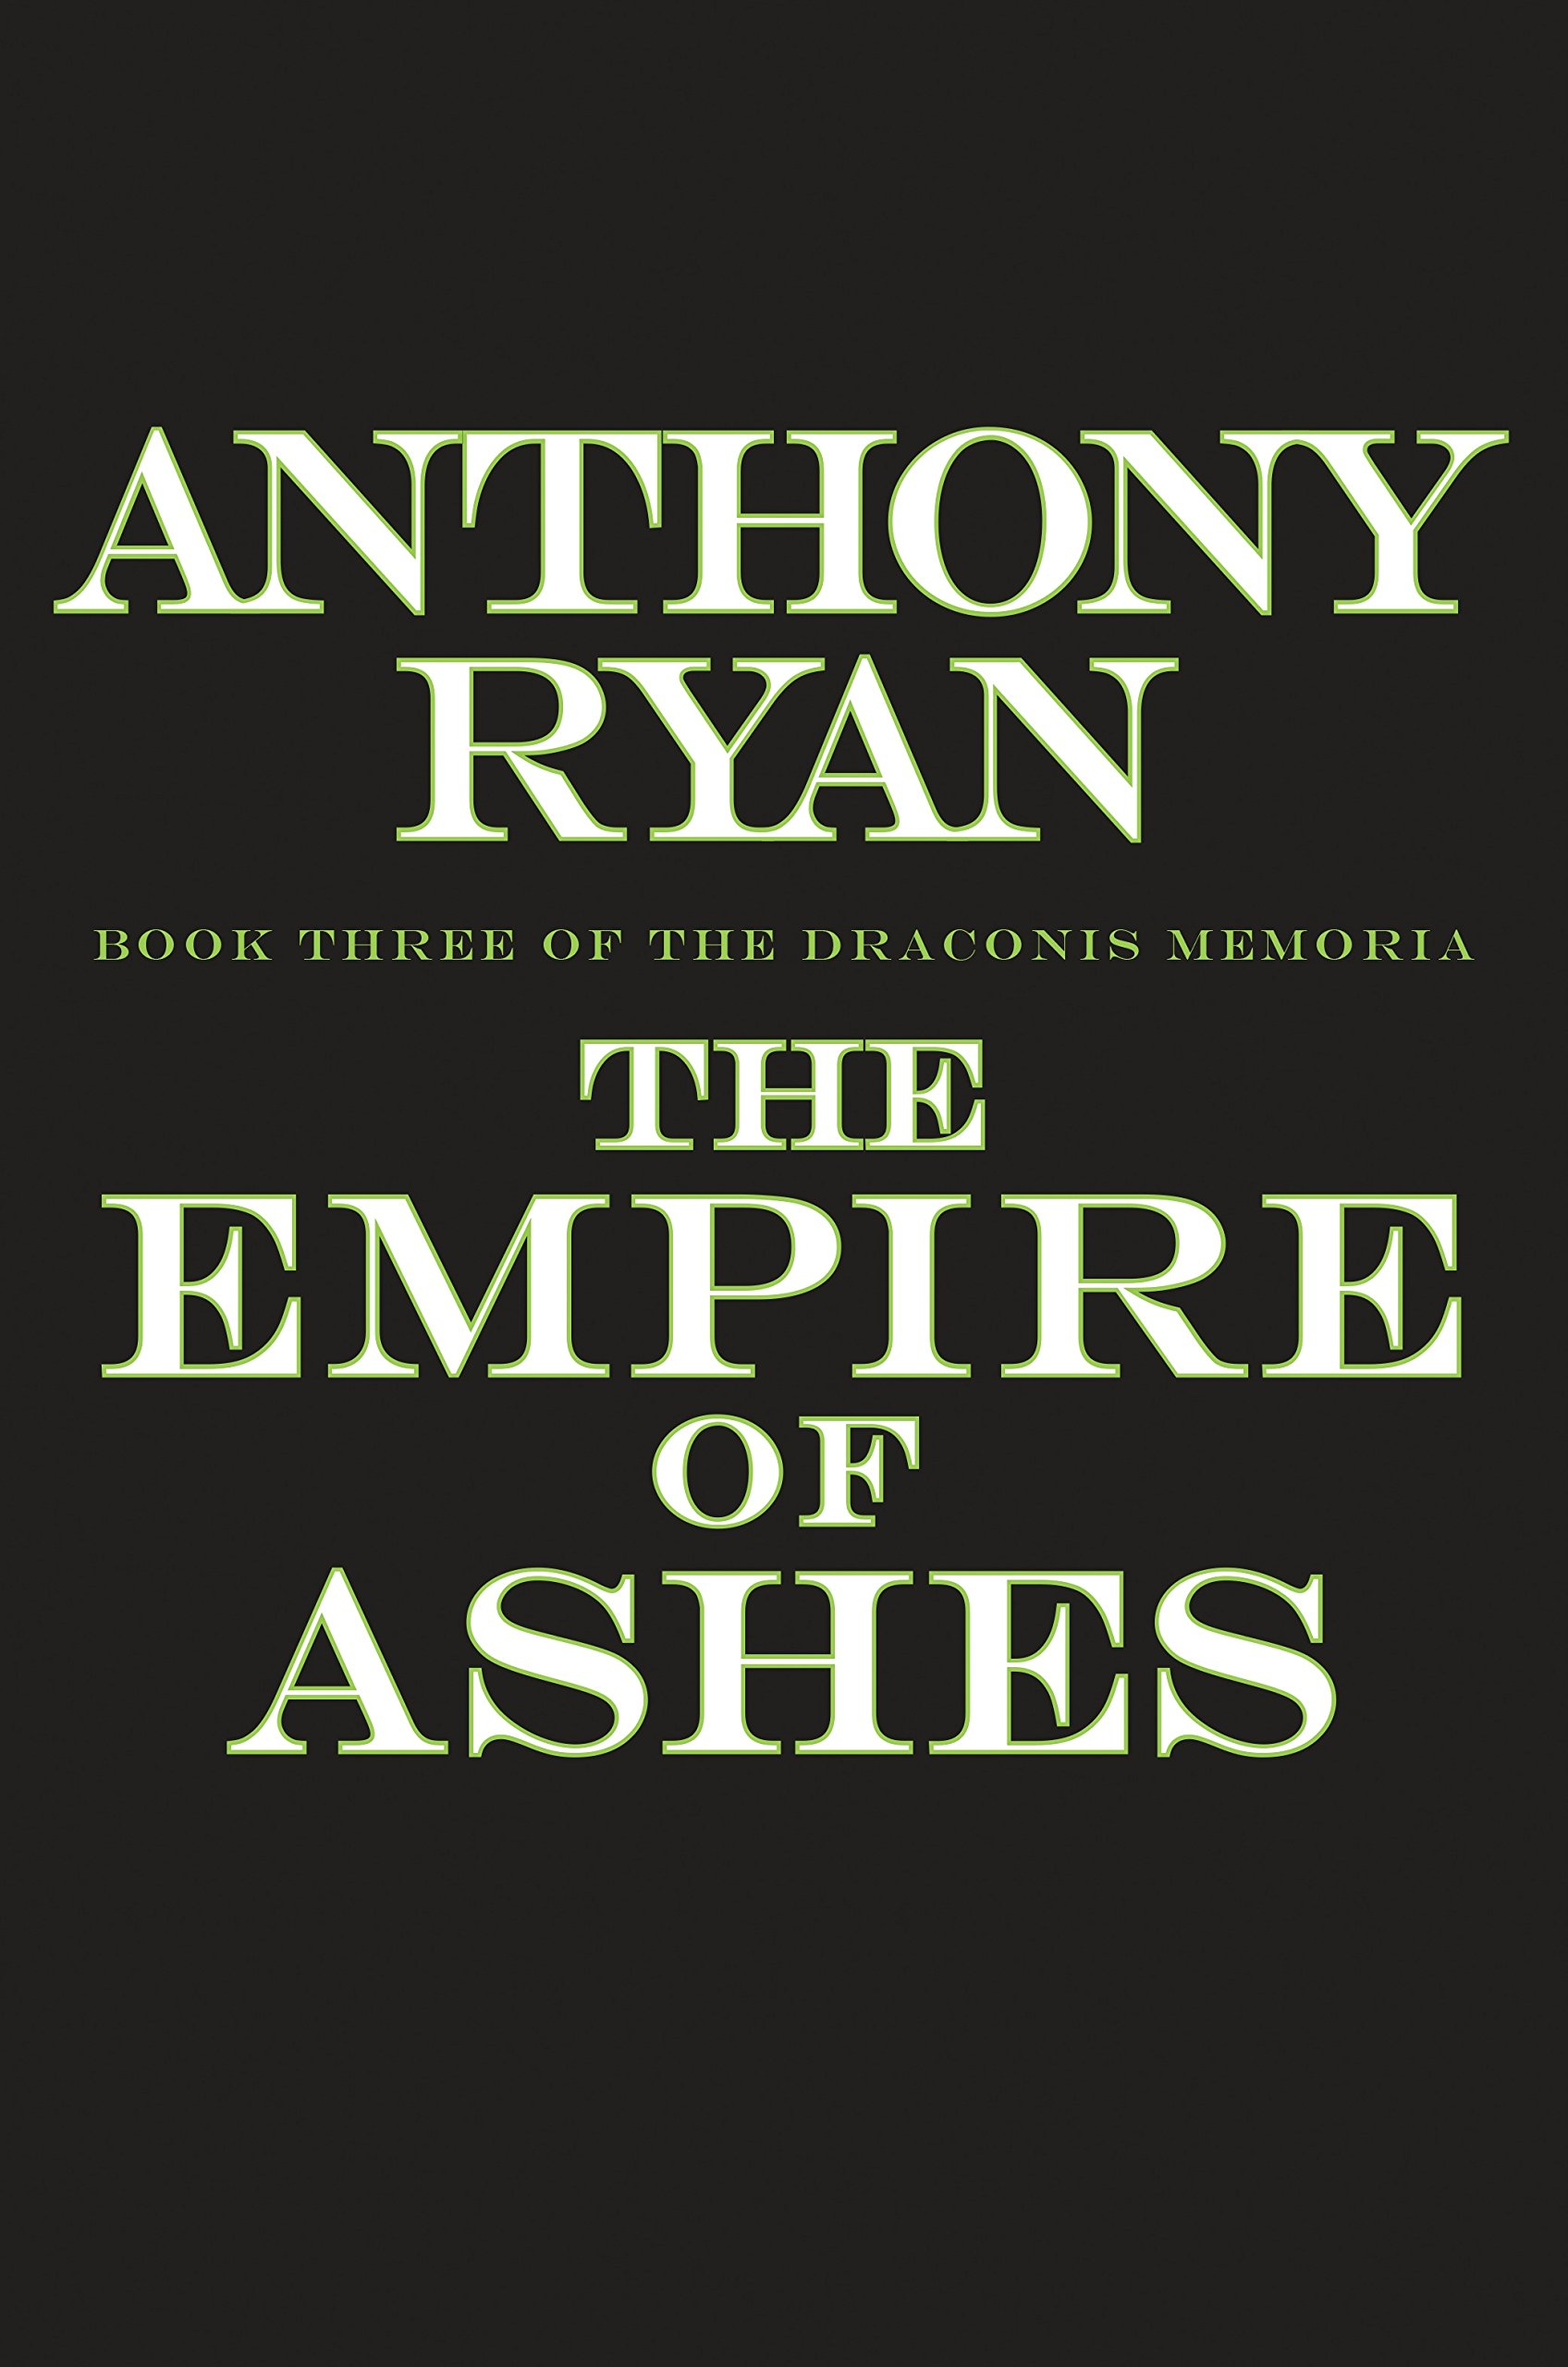 Announcing the empire of ashes book three of the draconis memoria